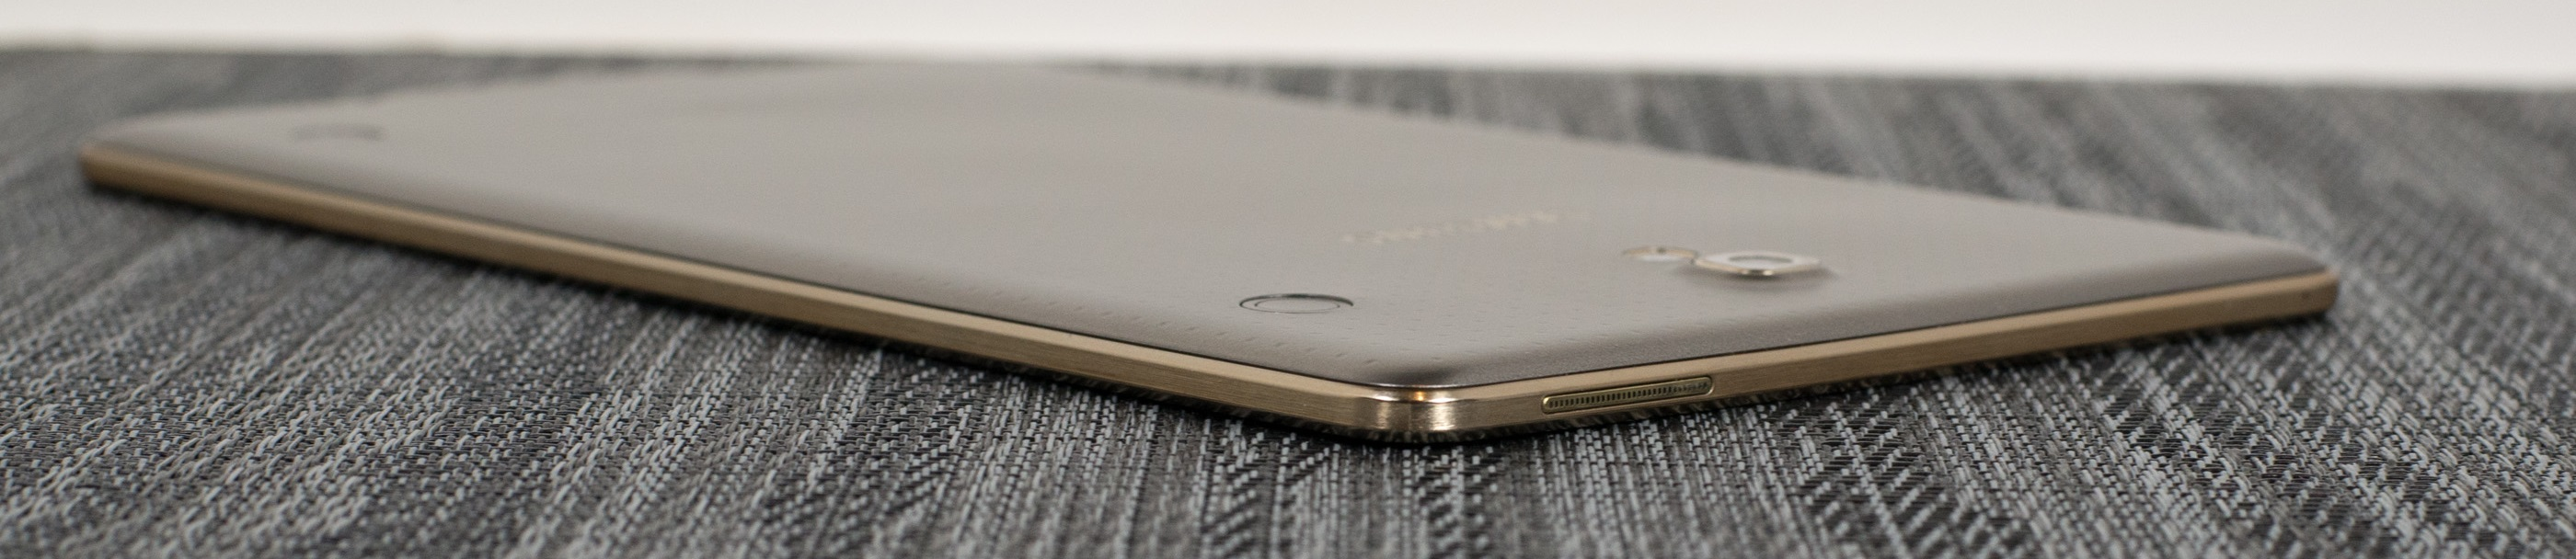 All tablets repaired in minutes | iPhone Repair Leeds